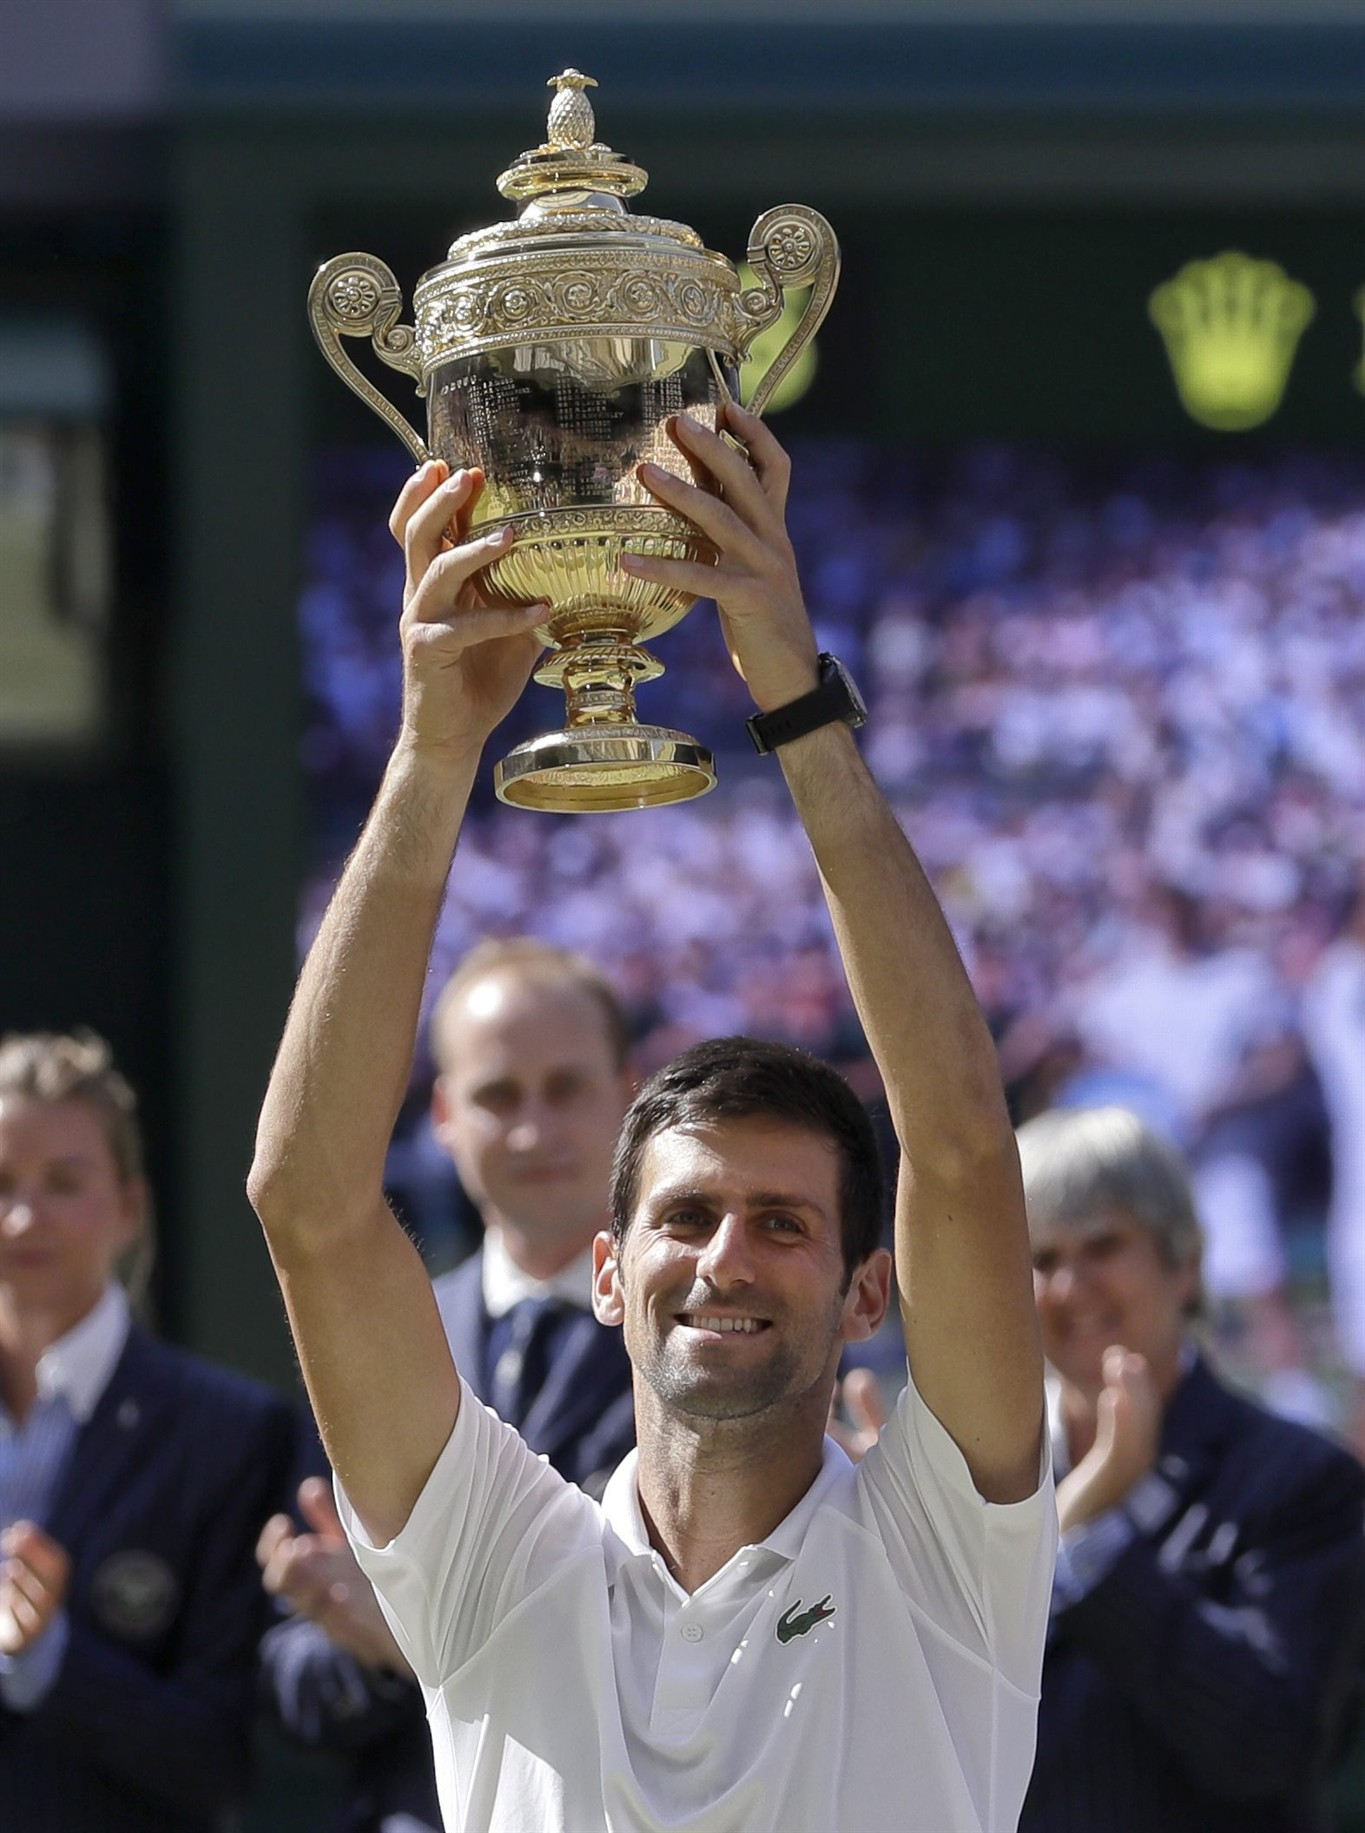 f70a939afc92f No doubt: Djokovic wins 4th Wimbledon, 1st Slam in 2 years